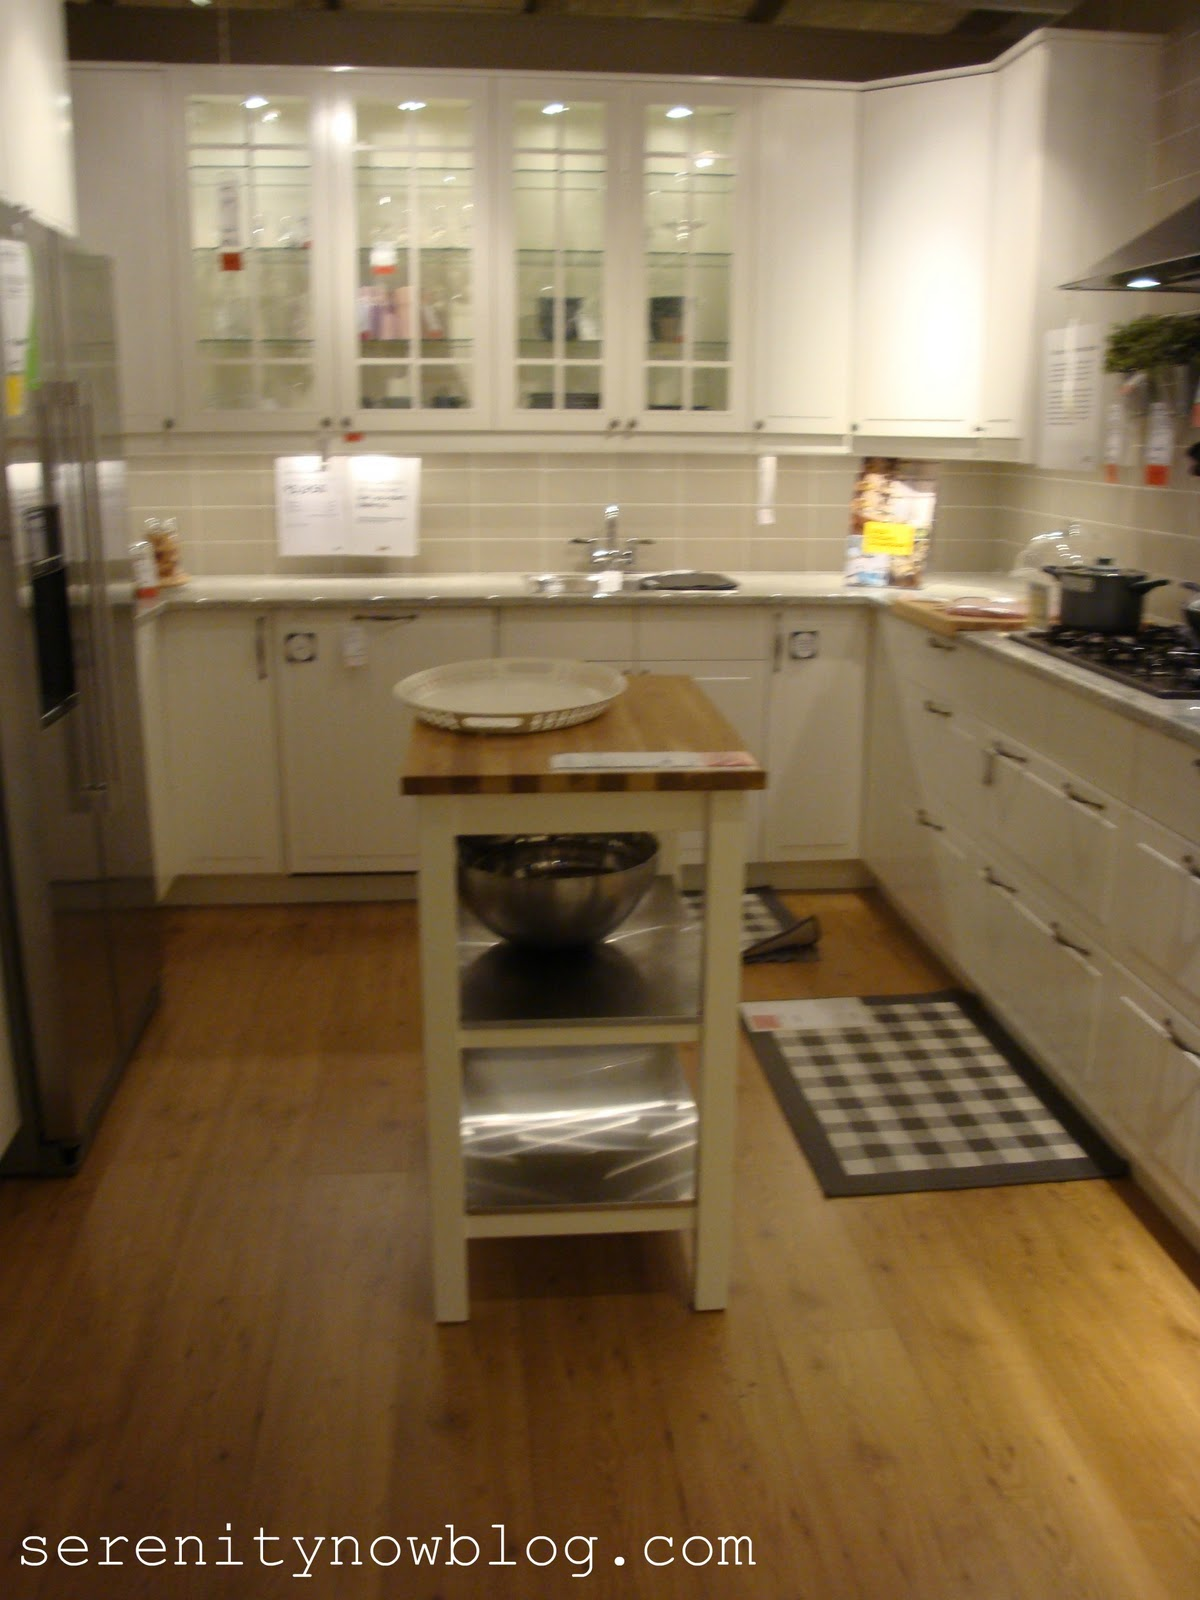 Serenity now ikea decorating inspiration our shopping fun - Ikea small kitchen design ideas ...